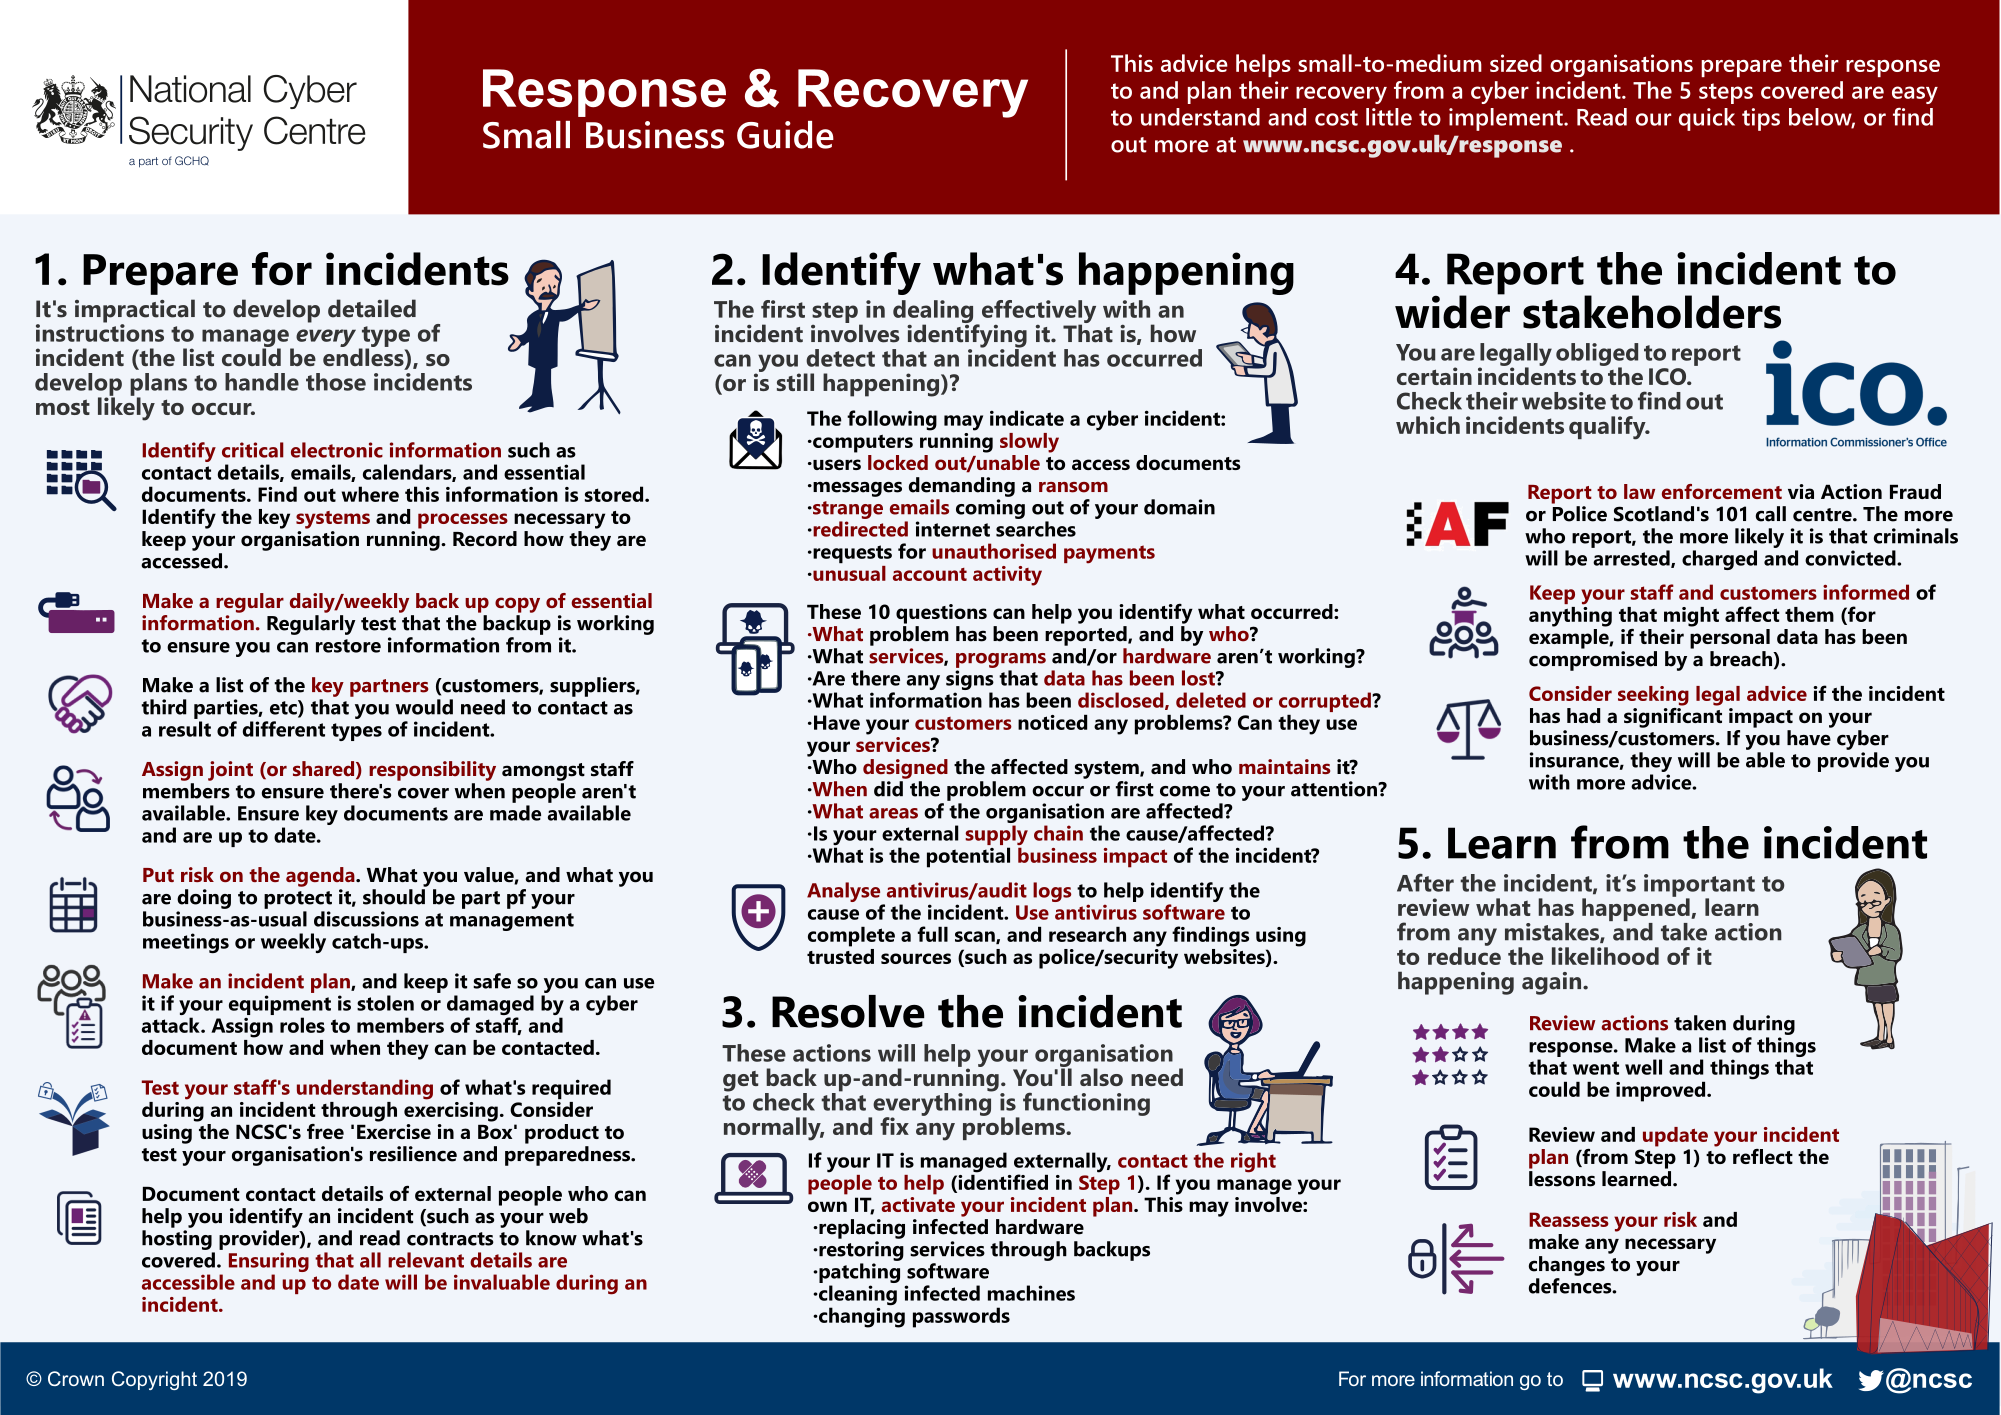 Small Business Guide: Response & Recovery - NCSC